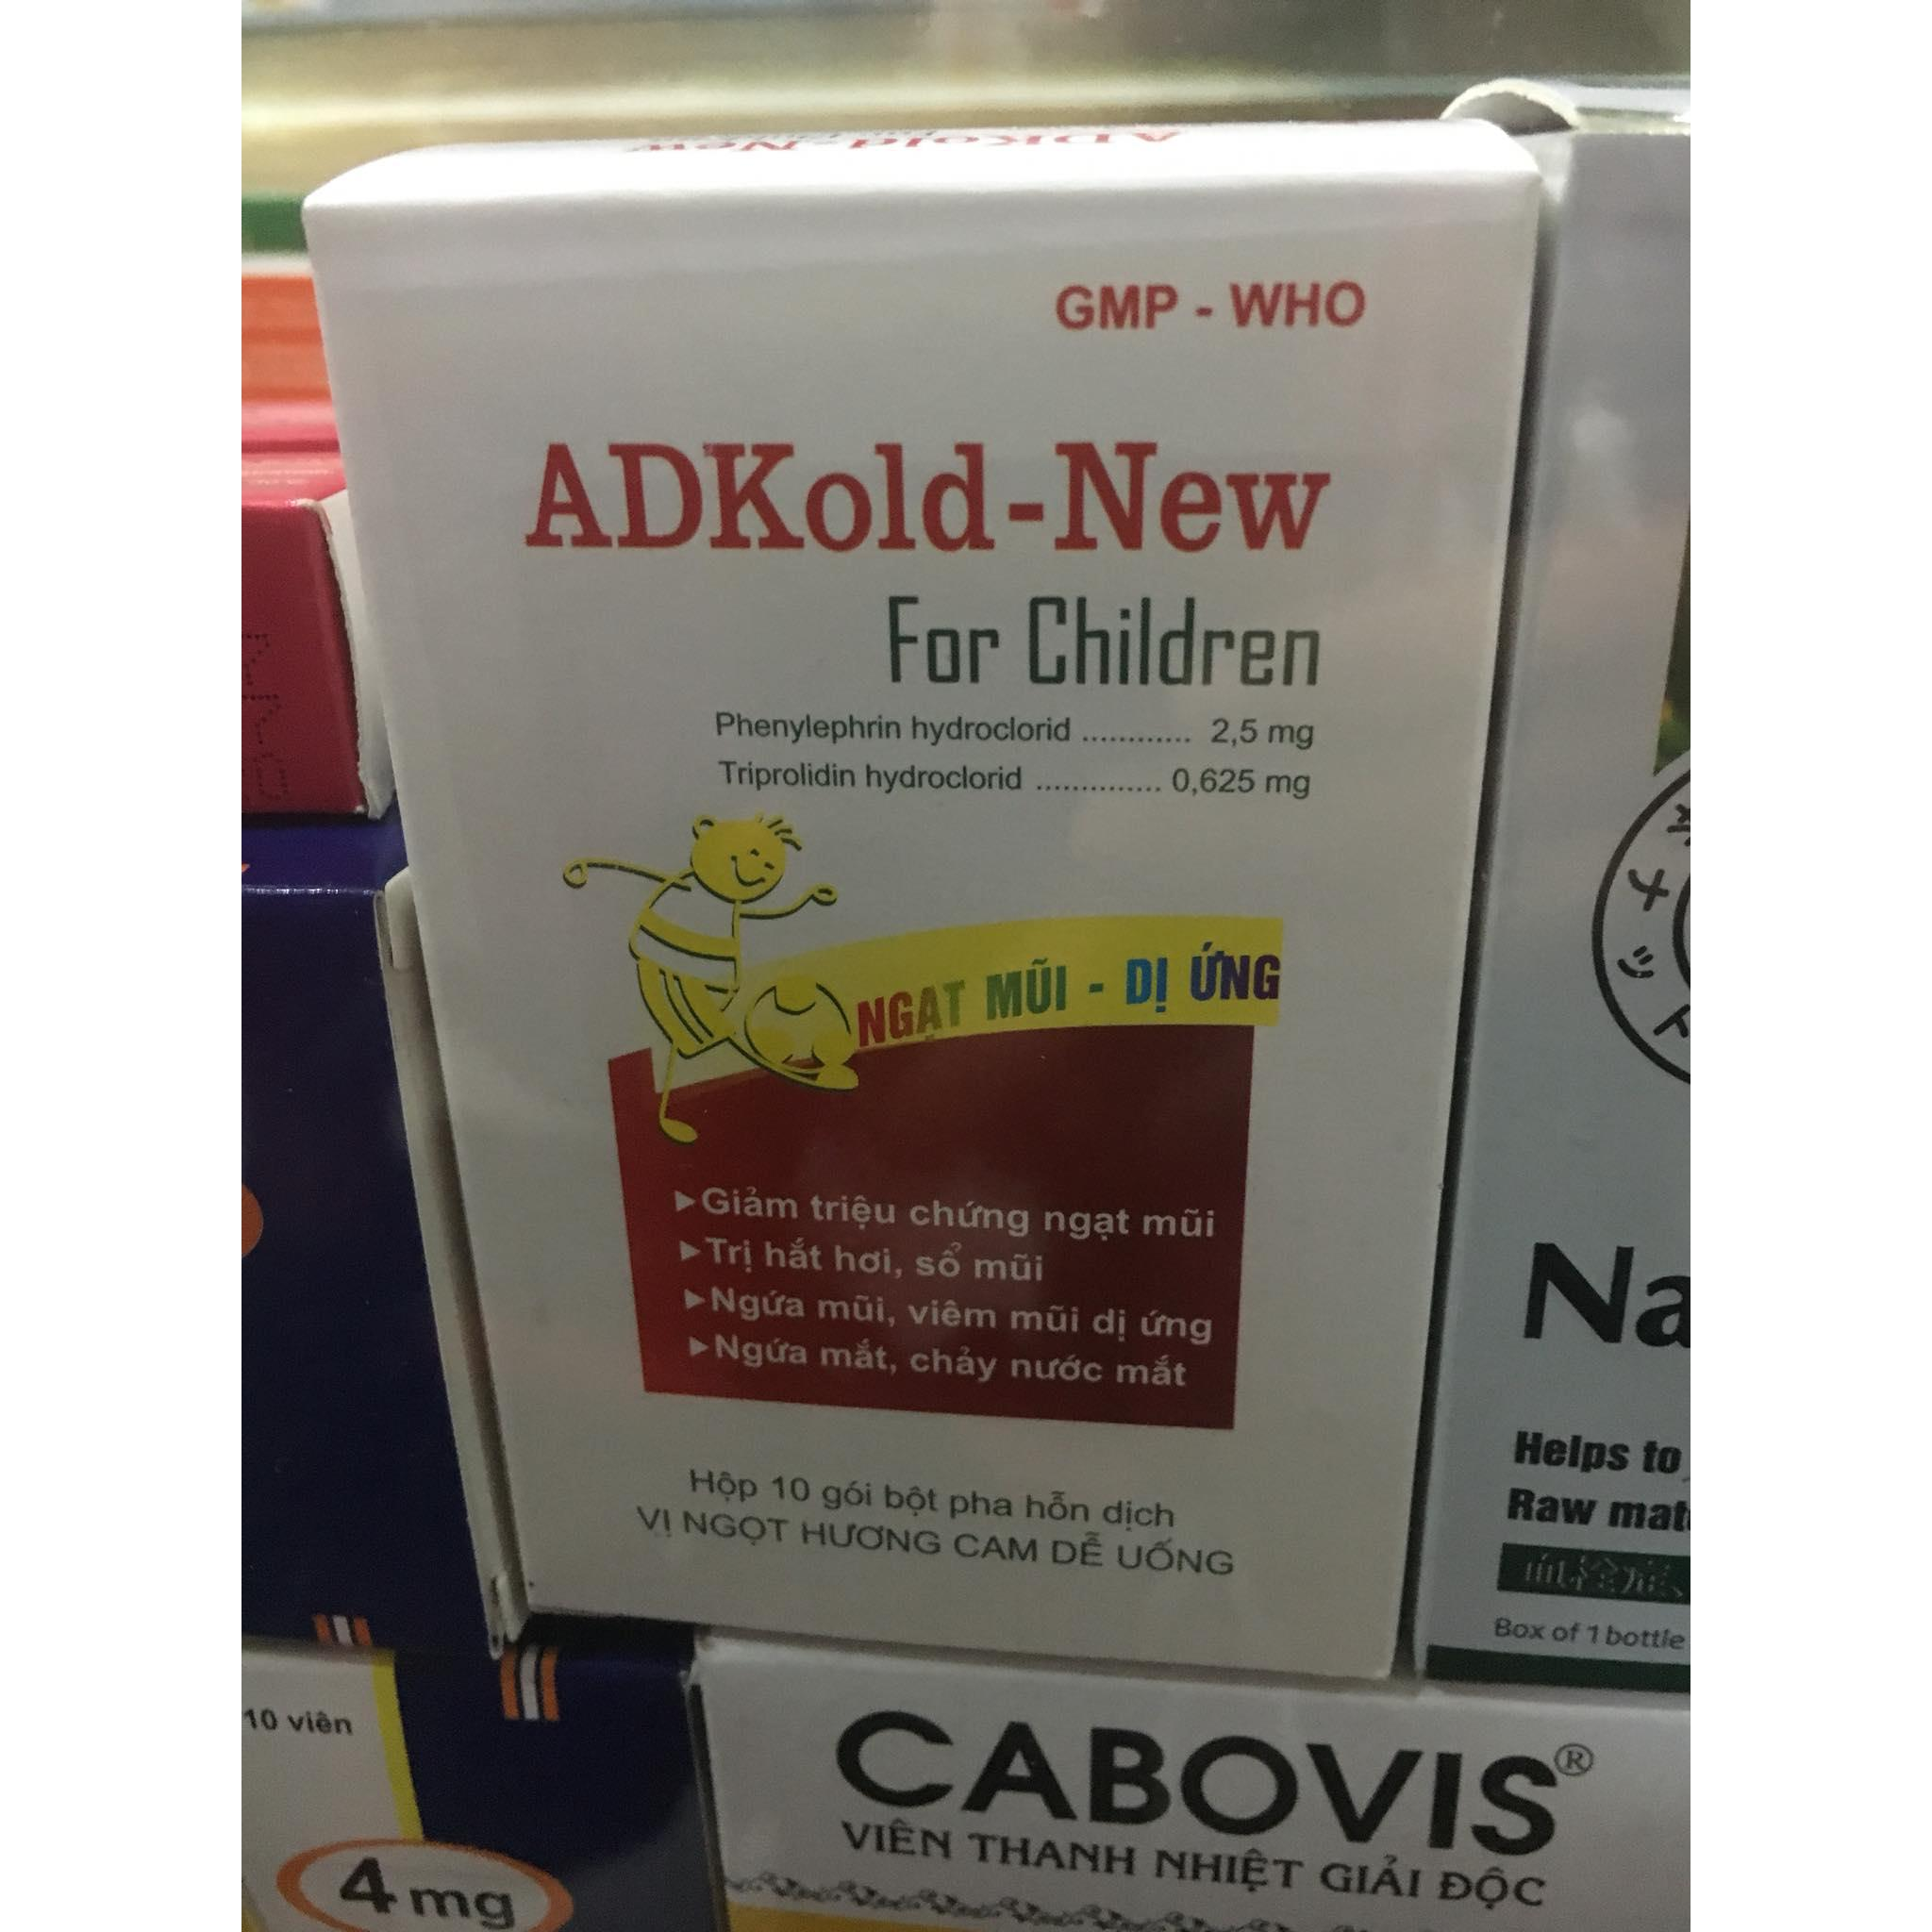 ADKold - New for children